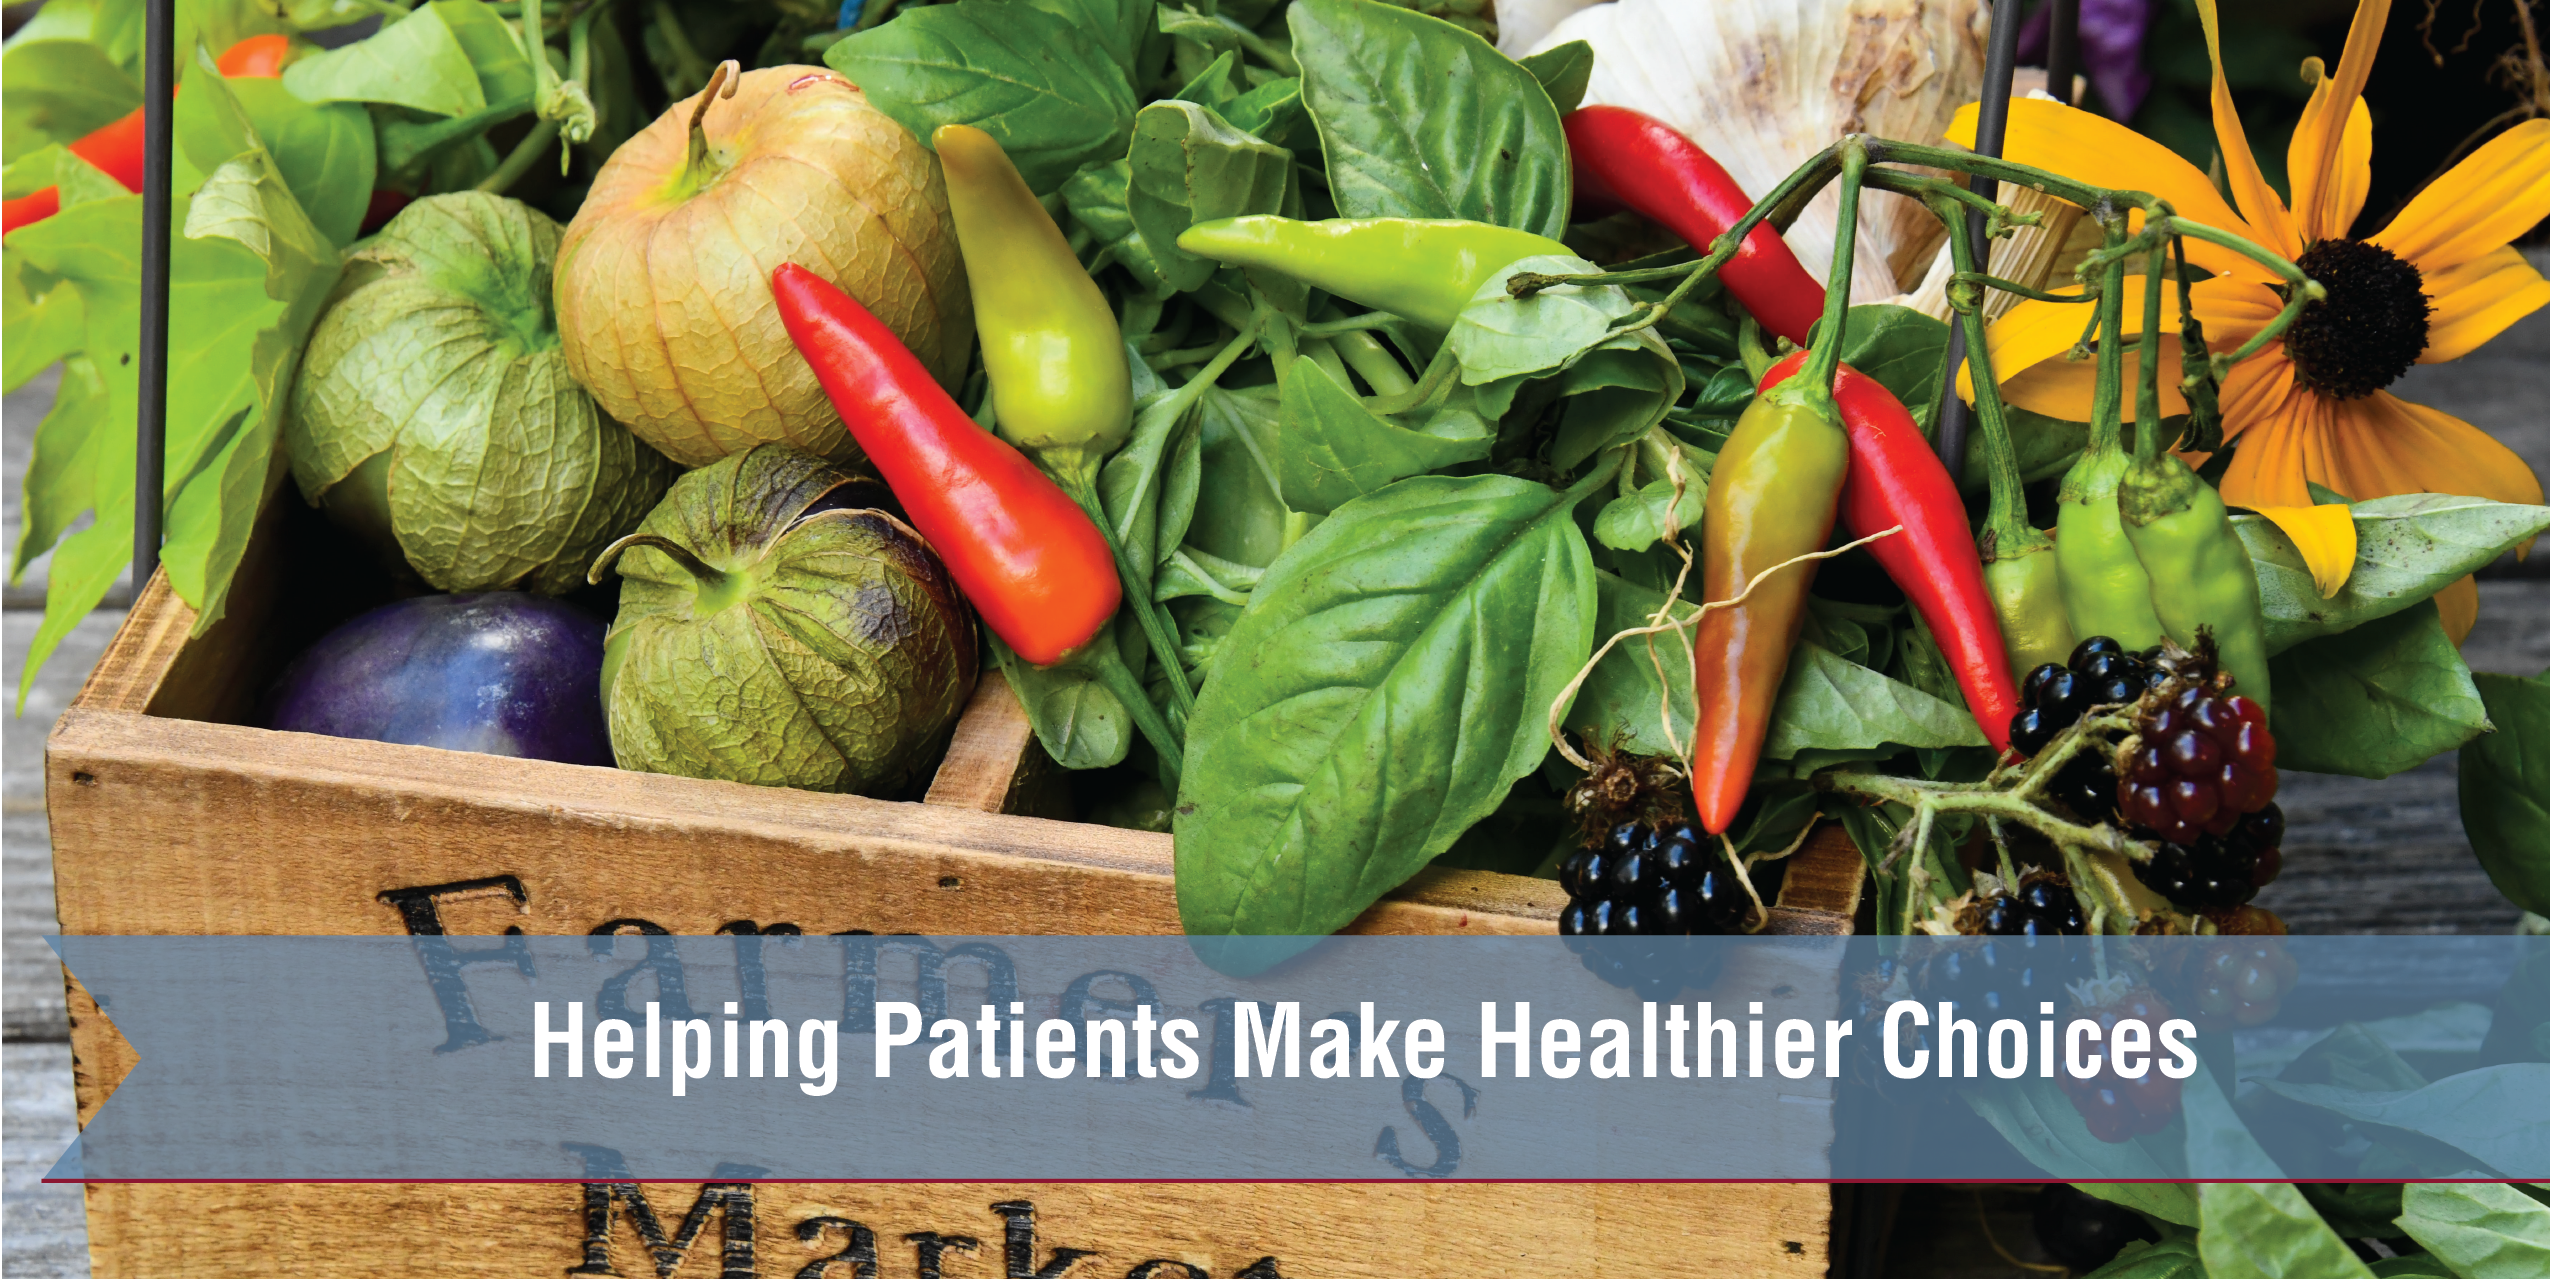 Helping Patients Make Healthier Choices